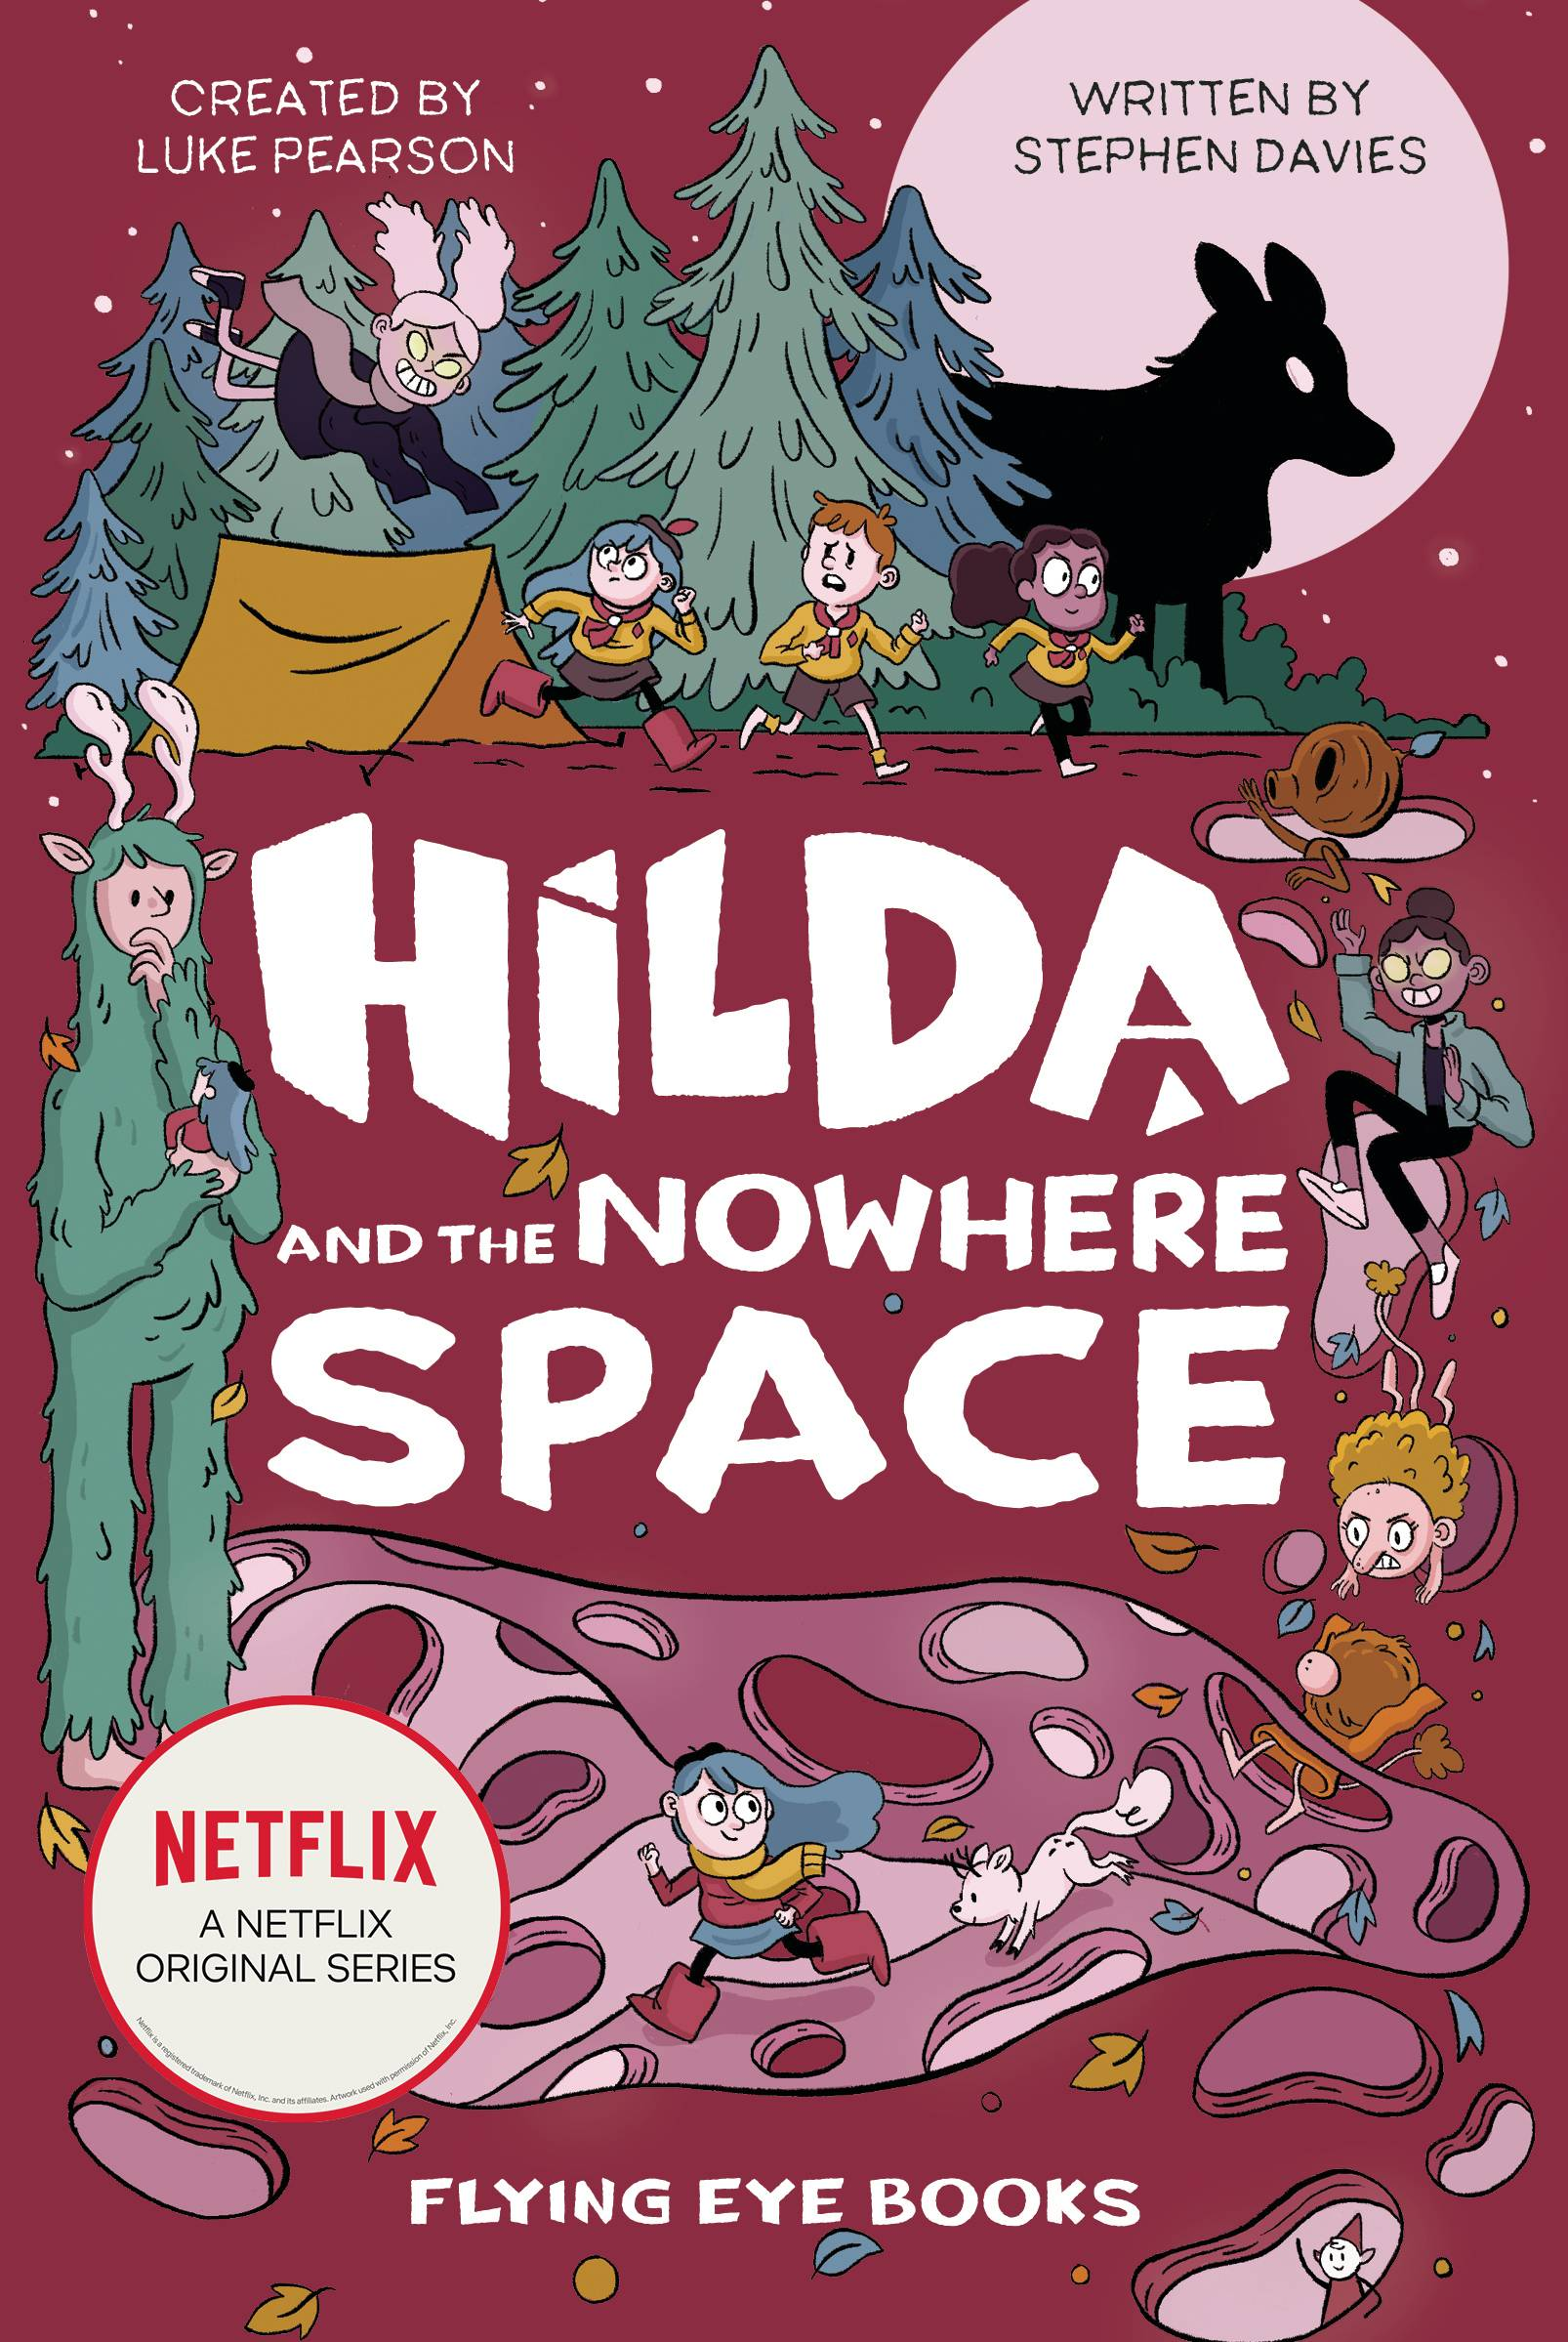 HILDA & NOWHERE SPACE NETFLIX TIE IN NOVEL.jpg